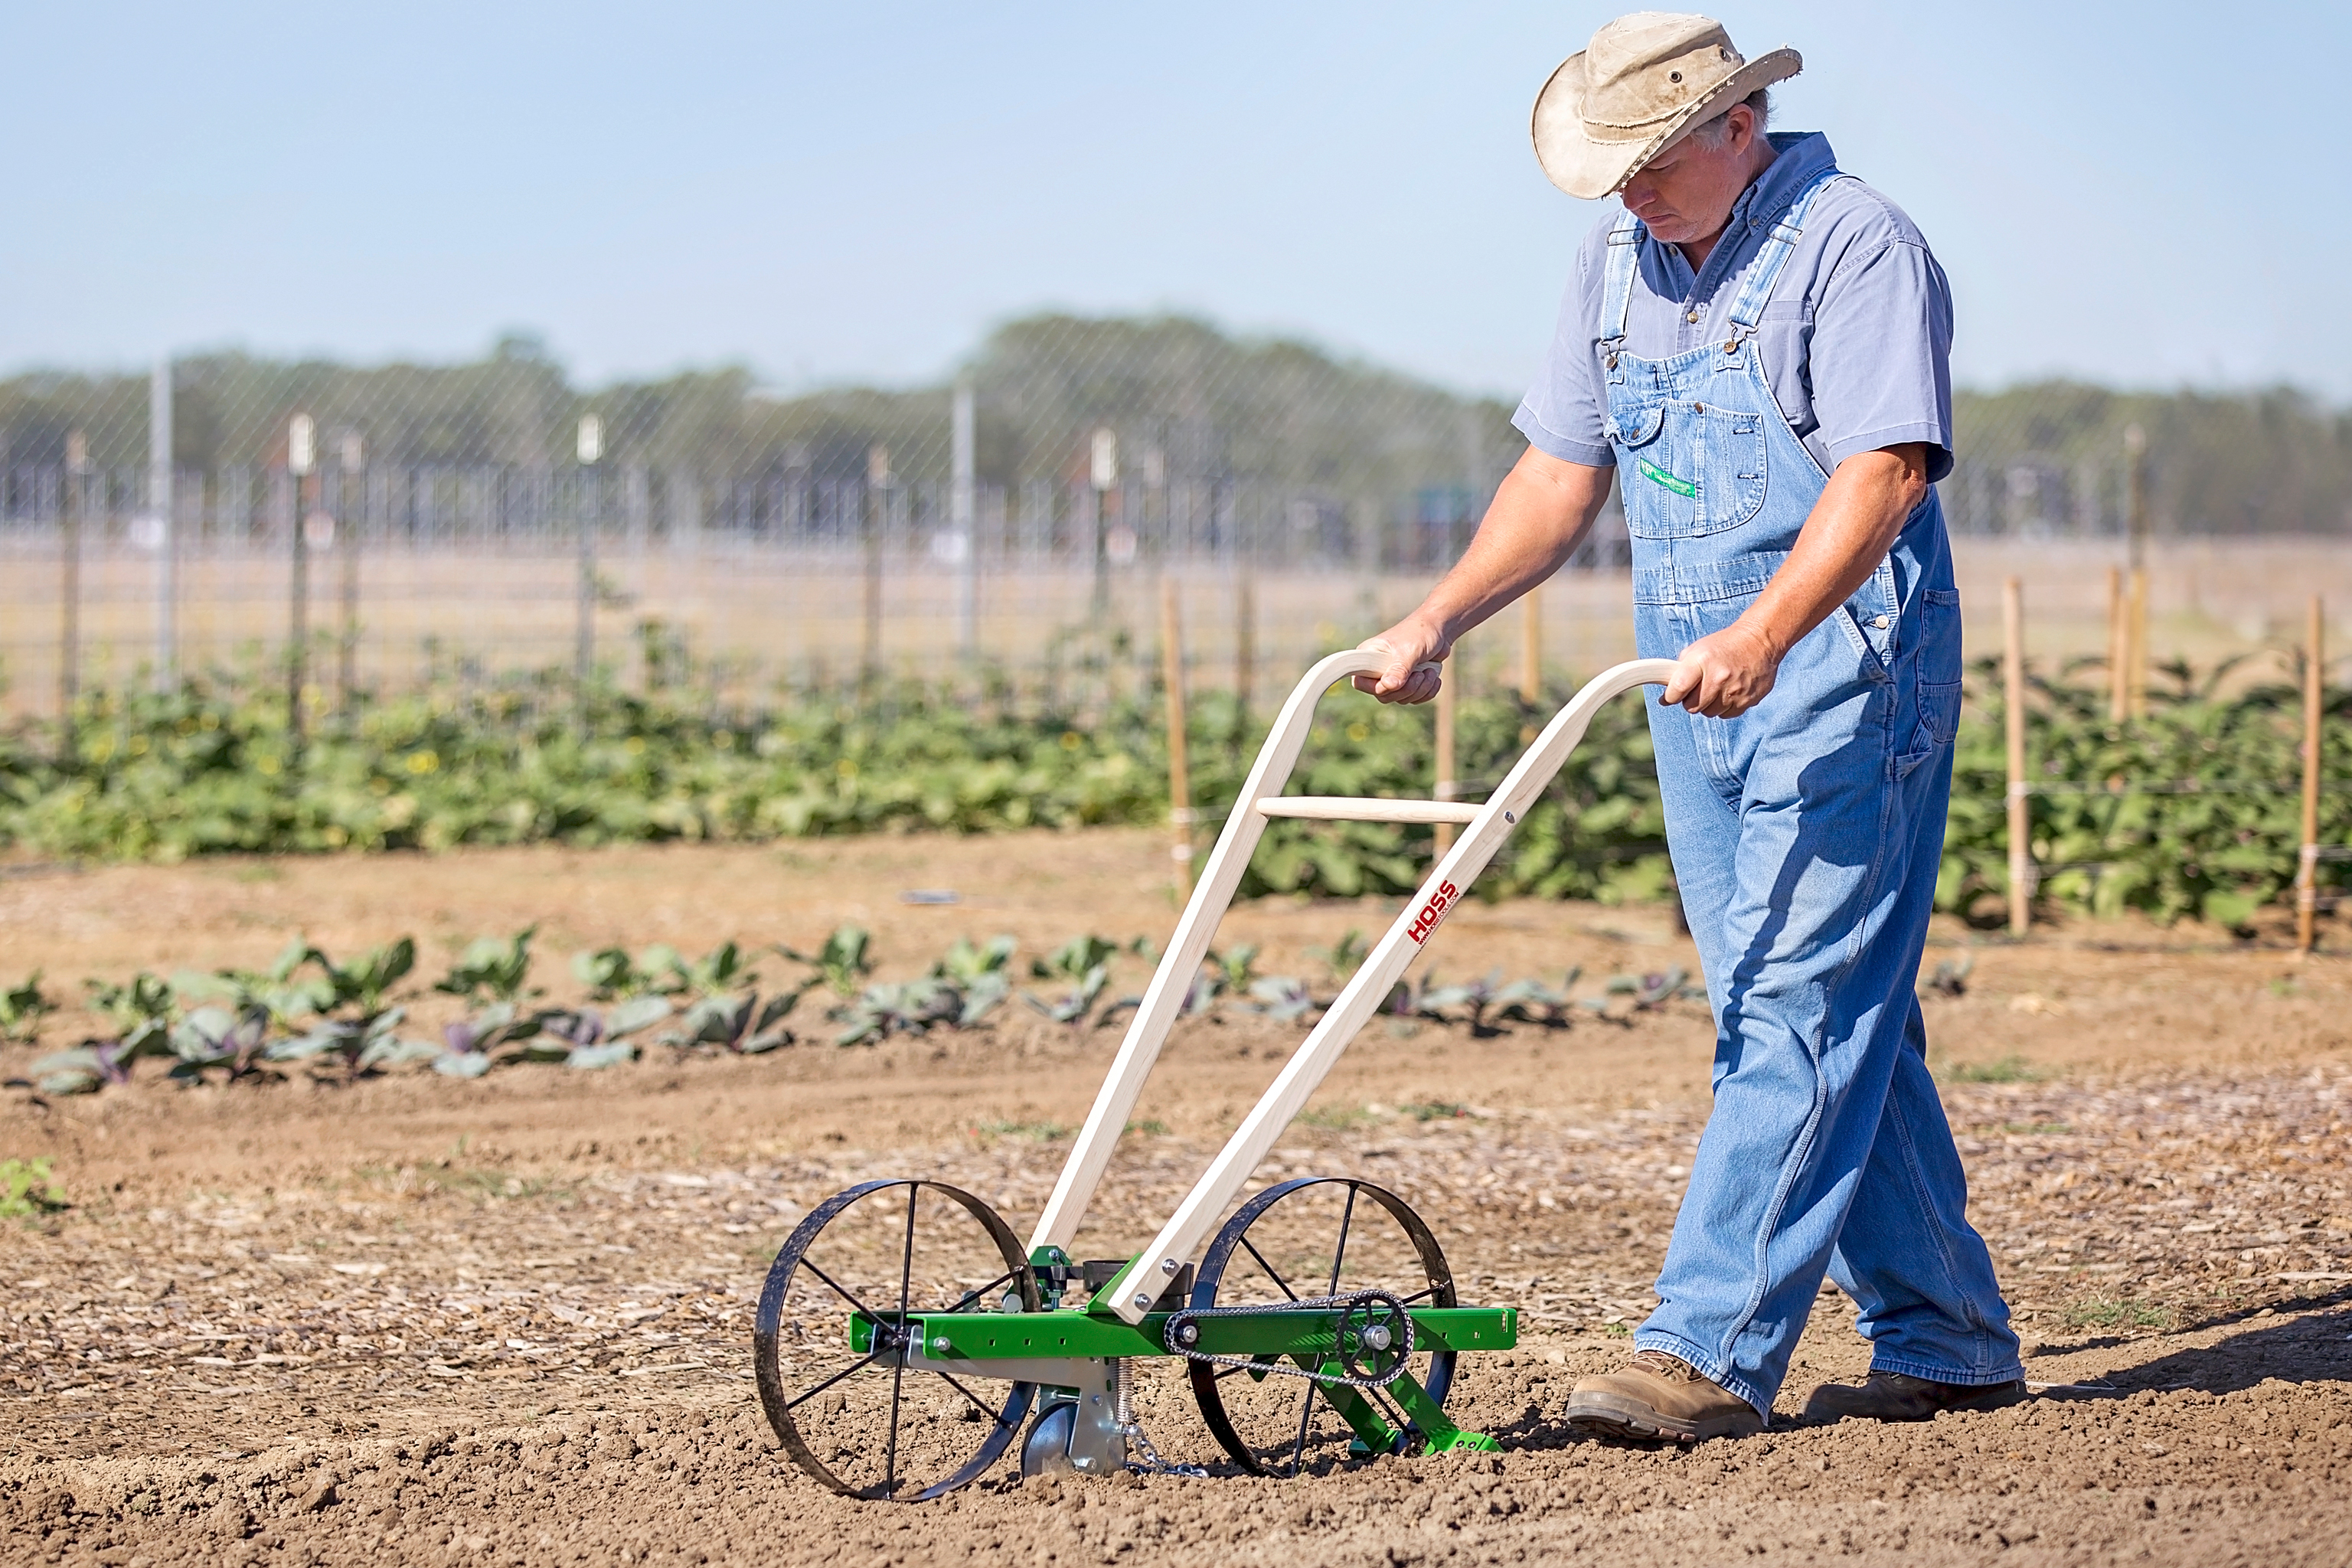 Garden Seeder - Hoss Tools | Makes Planting Easy | USA Made